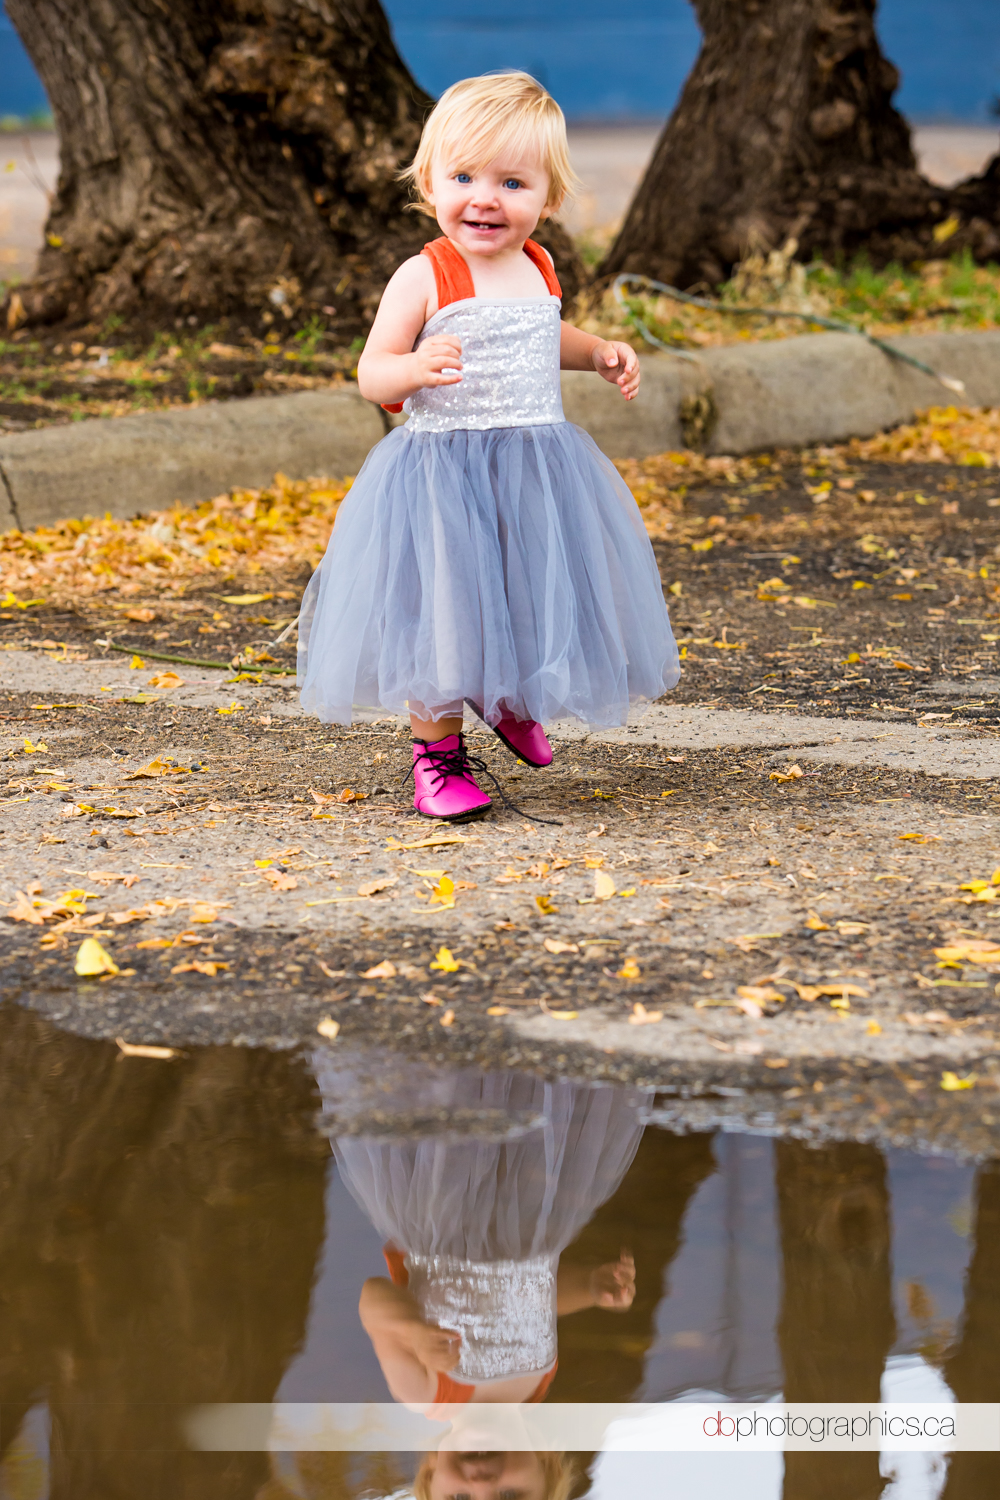 Fall Portrait Blitz 2015 - Biddy KJ - 20150913 - 0021.jpg